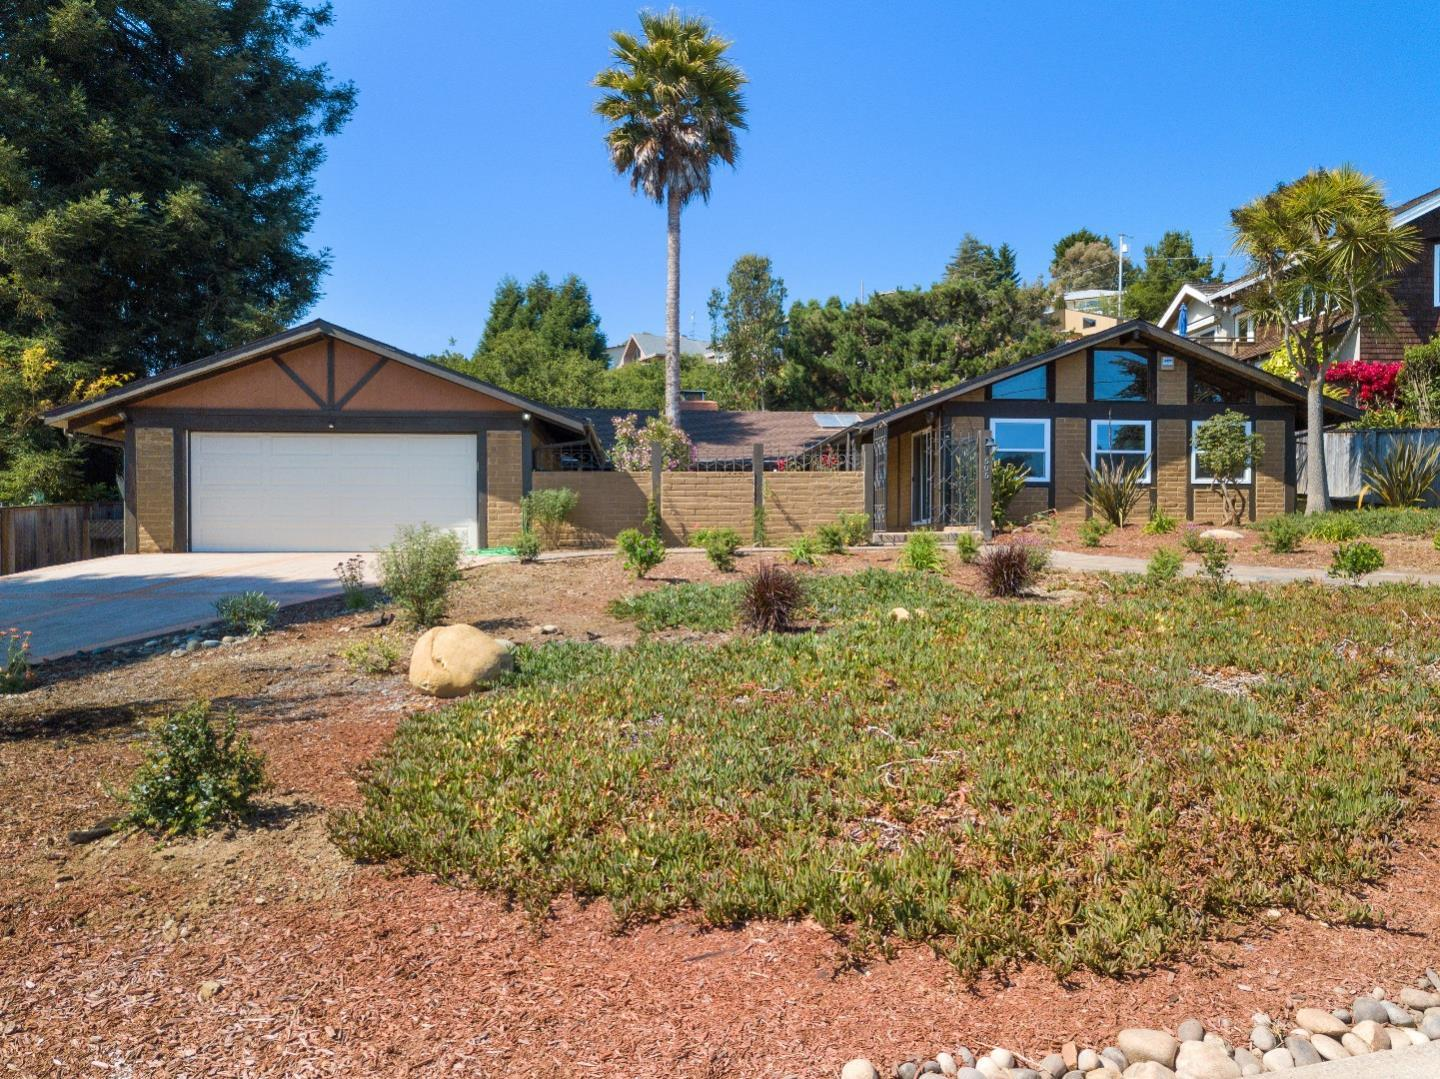 Ocean View, Single story,Carmel inspired Hacienda on a flat usable (12,196 sq ft) lot. Bright and open home with 2088 sq,ft., 4 bedrooms (3 w/lofts), 2 full baths, and a 2 car detached garage. New expansive concrete driveway, and RV/boat parking. New custom pavers lead from the driveway and street culminating  in the gorgeous private courtyard, perfect for entertaining.The home also boasts vaulted ceilings throughout, beautiful granite counter tops, new dual pane windows, forced air heating, remodeled baths, skylights, home security system, and reverse osmosis water system. Wonderful and desirable location with easy walks to the beach, convenient shopping, restaurants, and Seascape golf course. From the great room you can relax to the sound of ocean waves crashing on a quiet evening while enjoying the warmth of your dual sided fireplace. Rio Del Mar Elementary (A Blue Ribbon School) is a short walk away! Bring your inspiration and make this your dream Home!